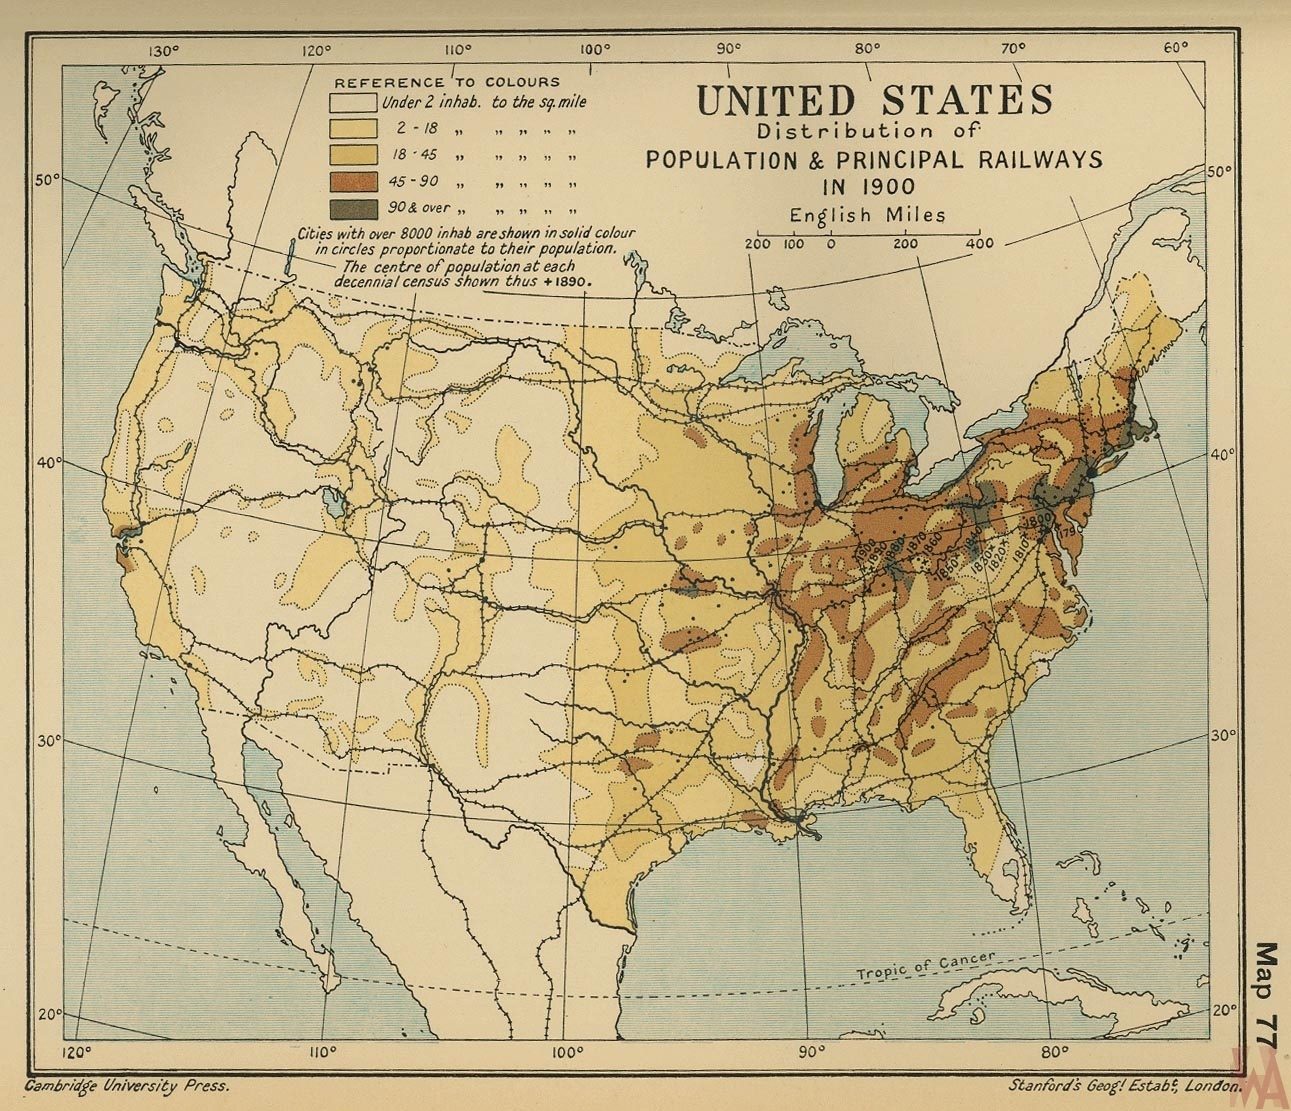 us population and railway- Source Cambridge Uni Press 1900